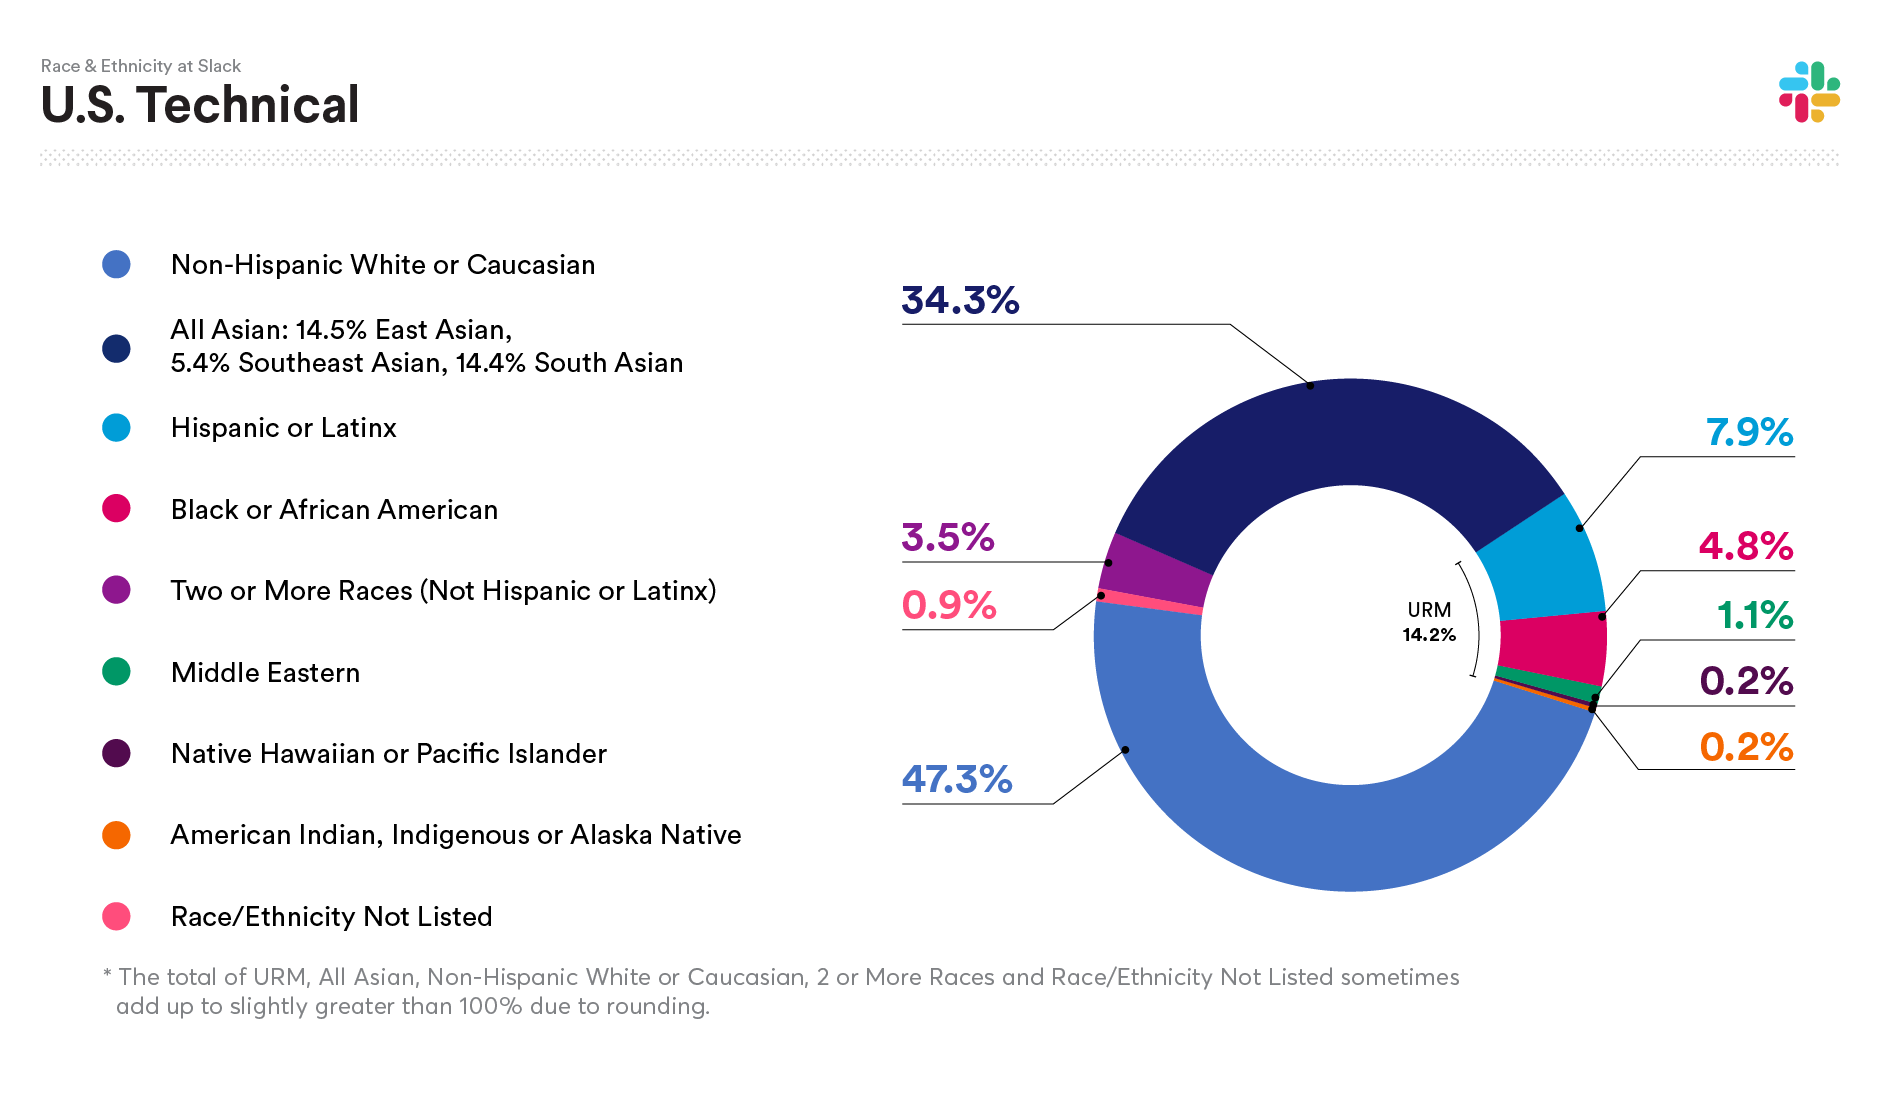 2020 Slack data on U.S. Technical Race and Ethnicity: Non-Hispanic White or Caucasian 47.3%; All Asian: 34.3%; Hispanic or Latinx 7.9%; Black or African American 4.8%; Two or more races (not Hispanic or Latinx) 3.5%; Middle Eastern 1.1%; Native Hawaiian or Pacific Islander 0.2%; American Indian, Indigenous or Alaska Native 0.2%; Race/Ethnicity not listed 0.9%